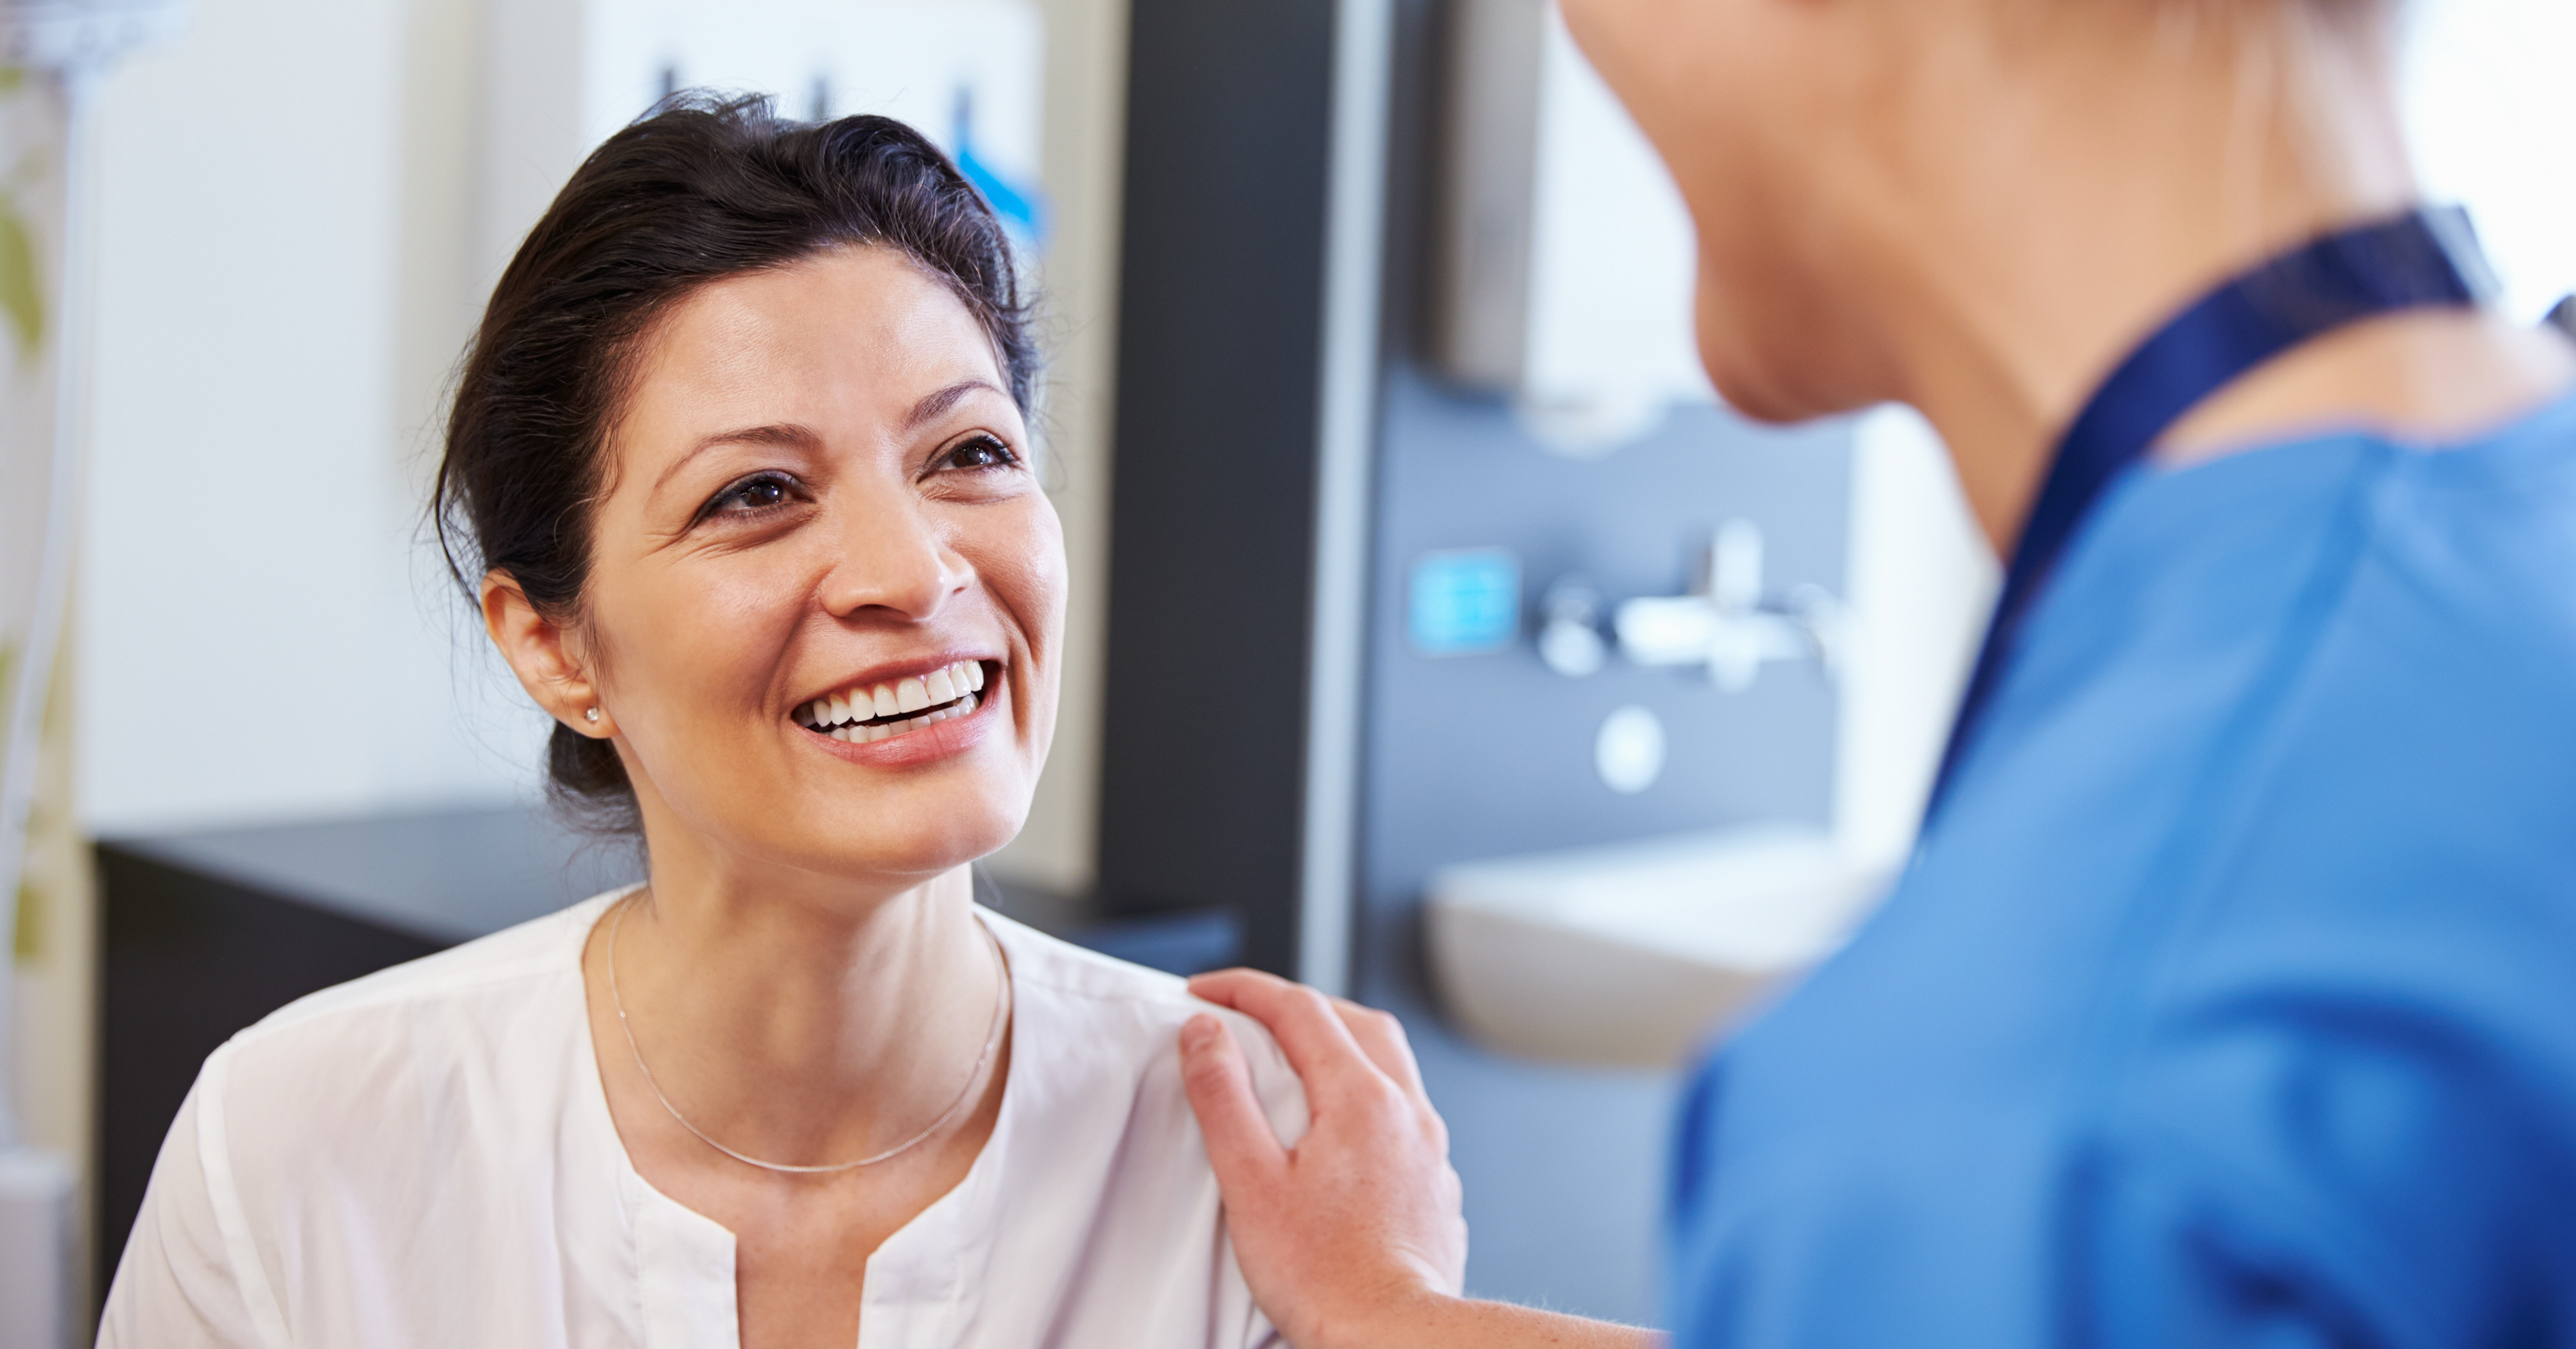 Patient engagement platforms designed with users in mind increase patient happiness